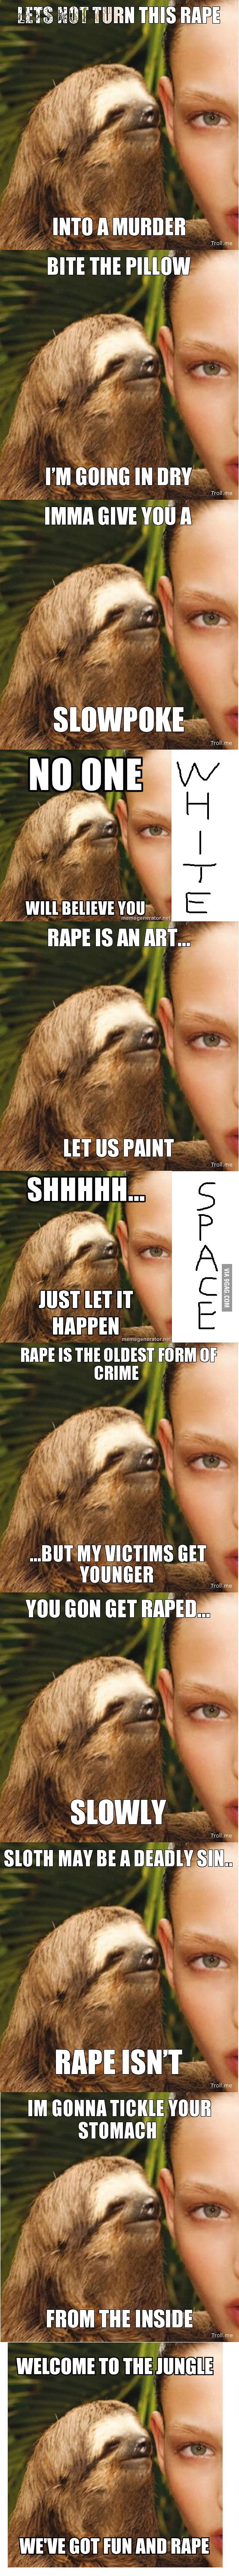 Rape sloth compilation